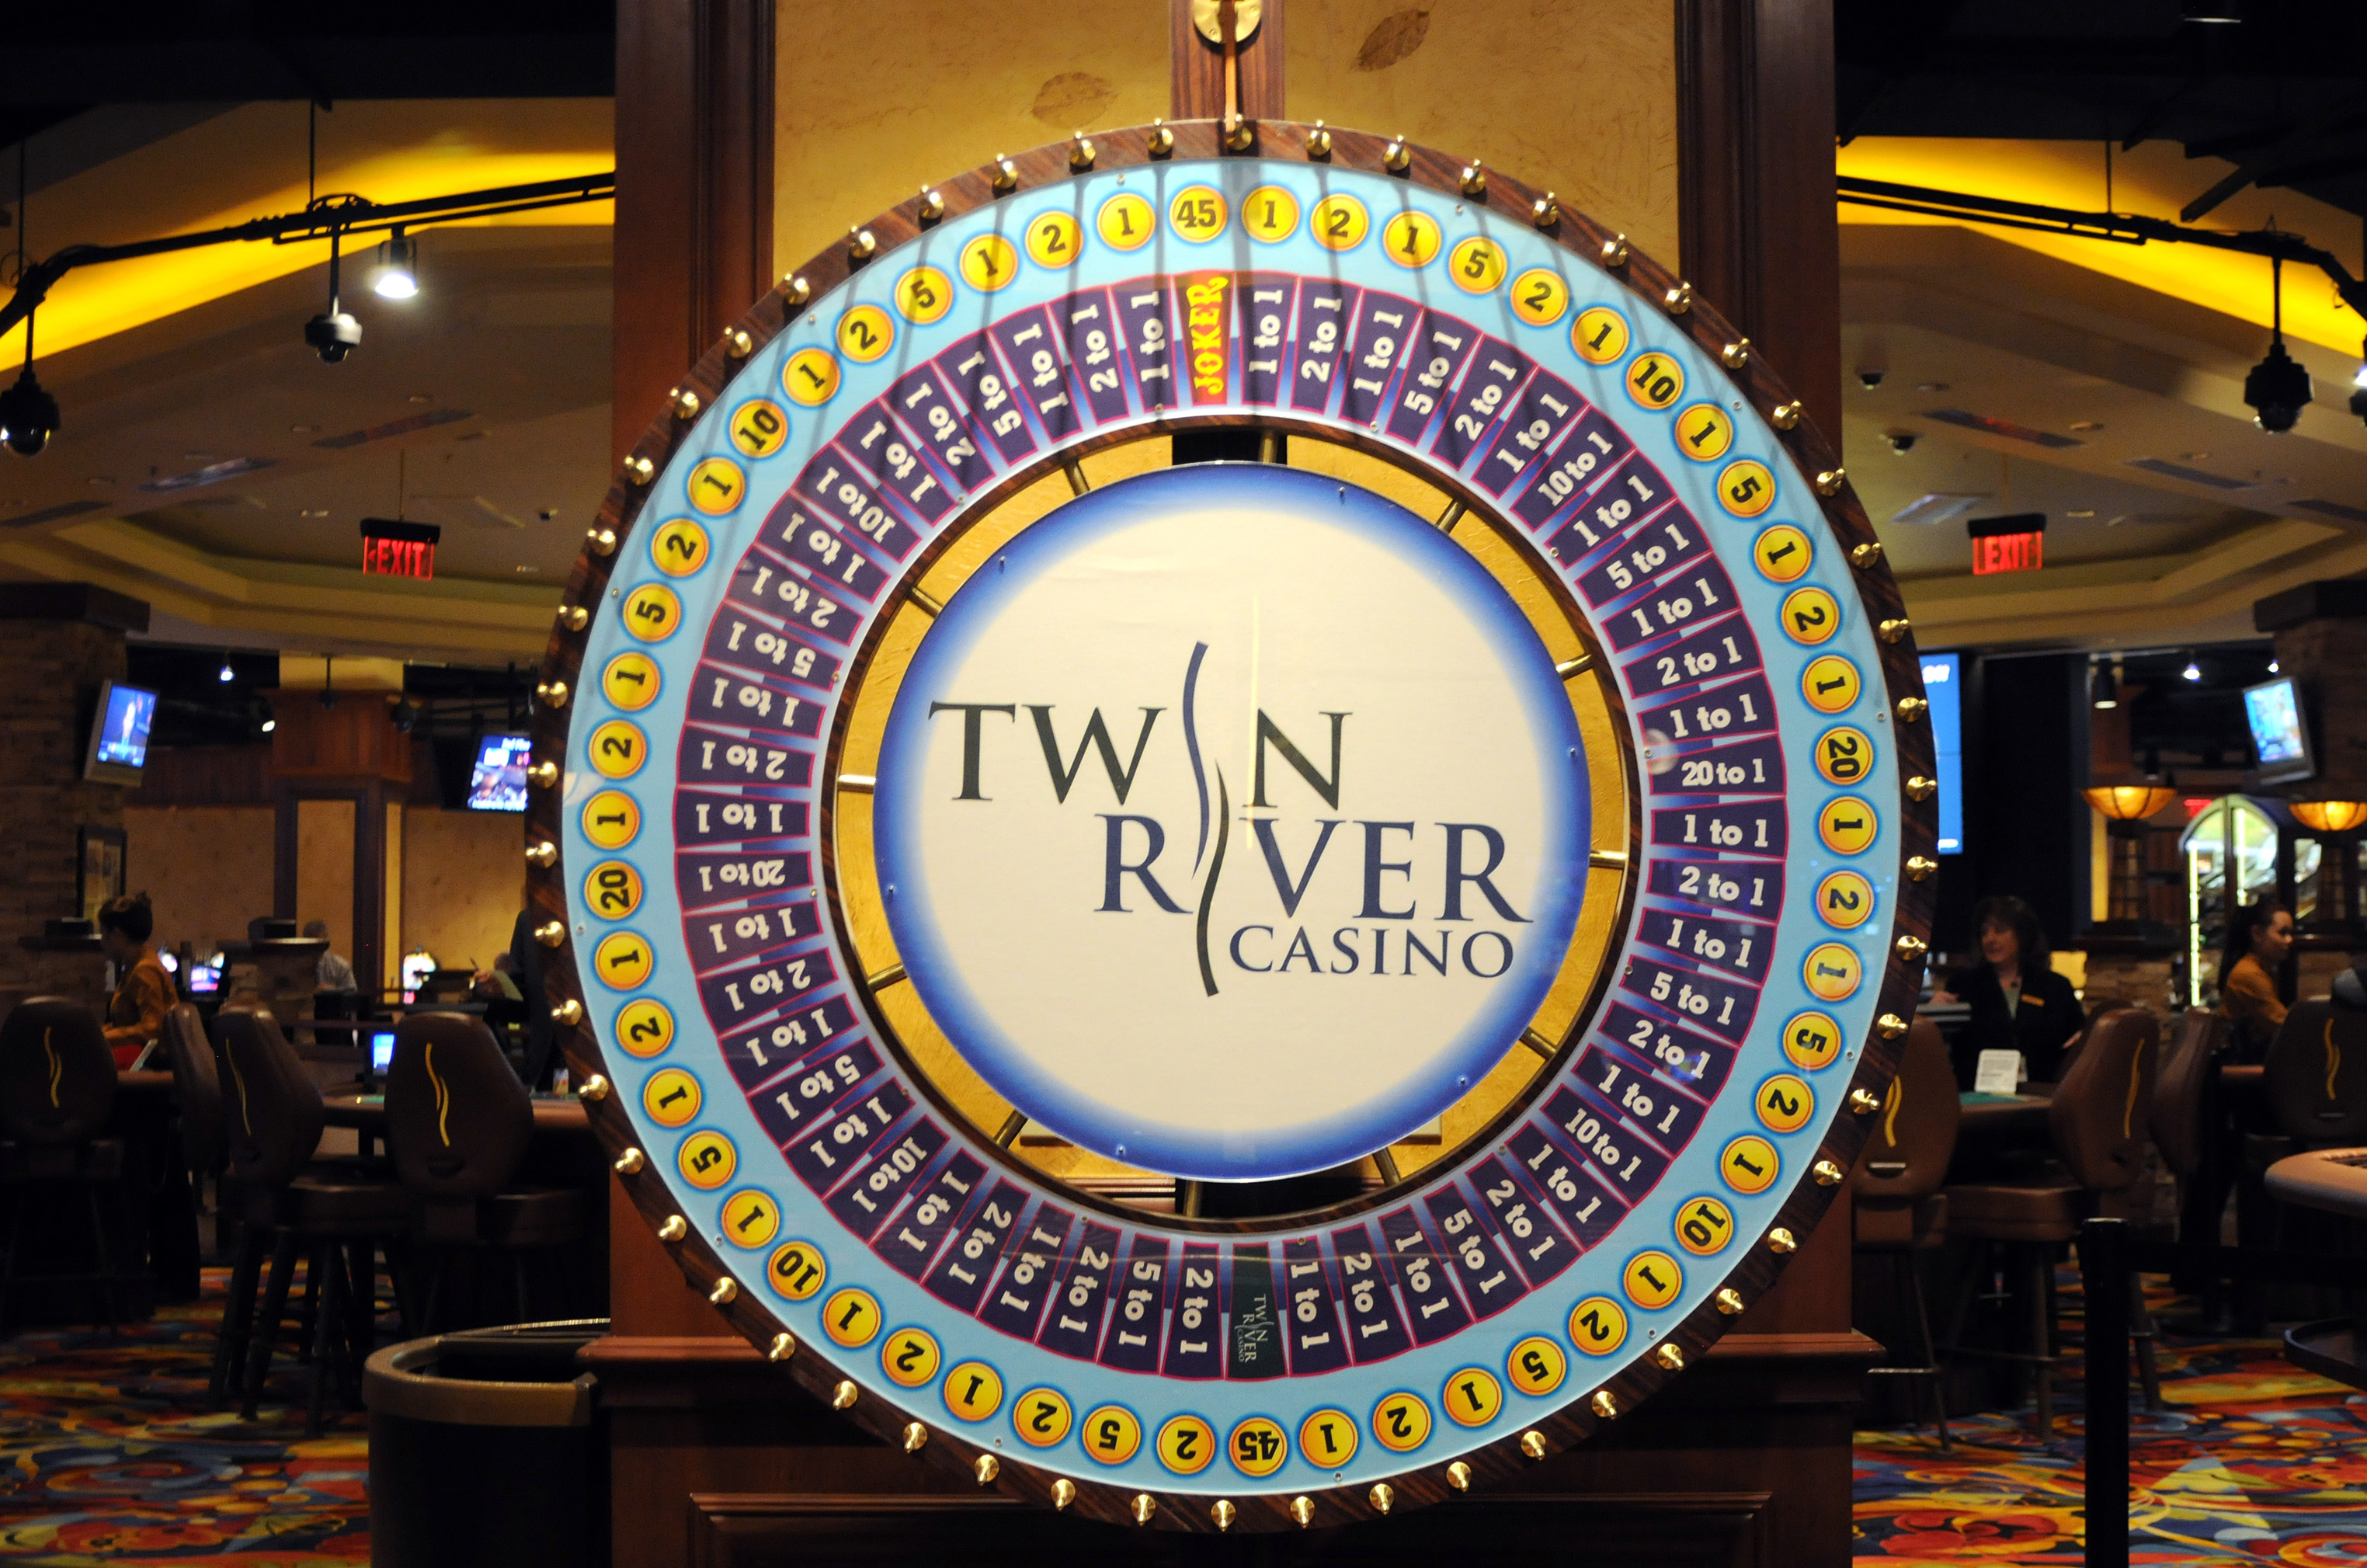 Twin river off track betting betting bias horse racing tips